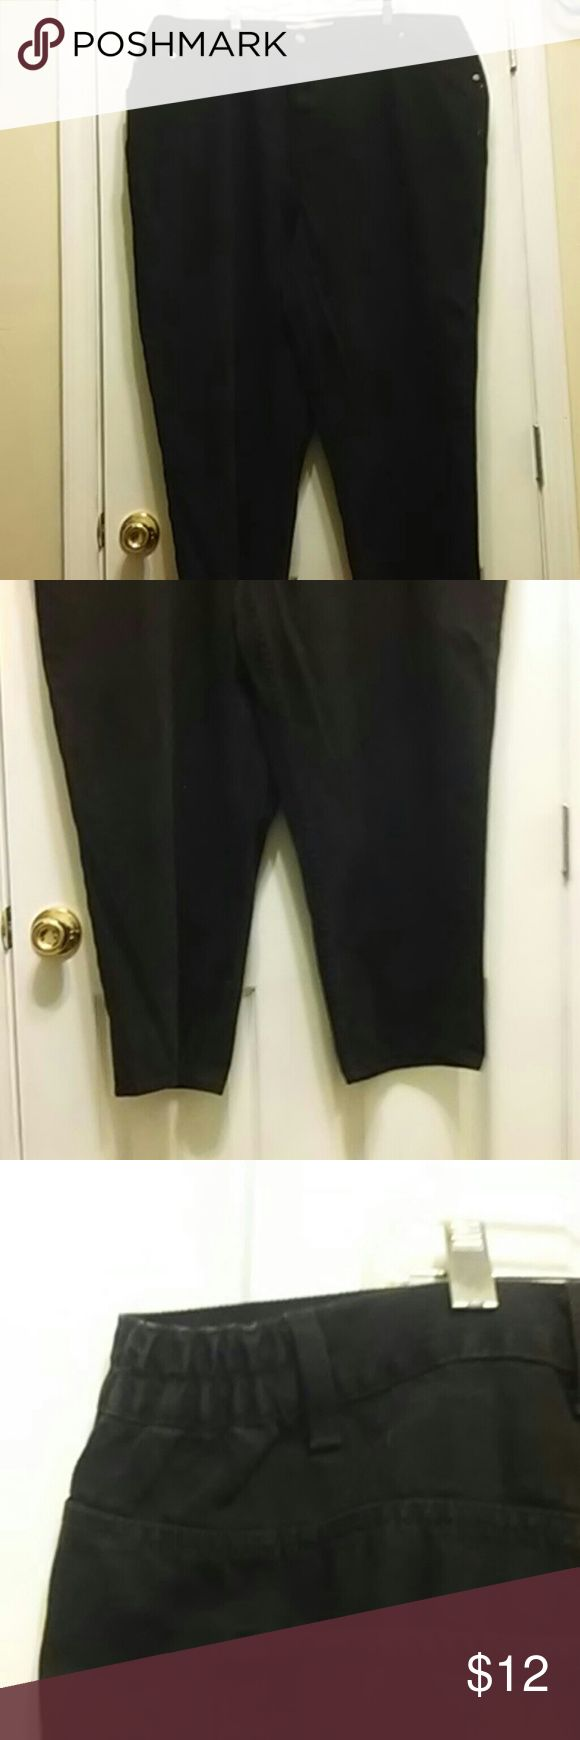 Route 66 men's relaxed black jeans size 50 w229 l 50wx29L Jeans Relaxed